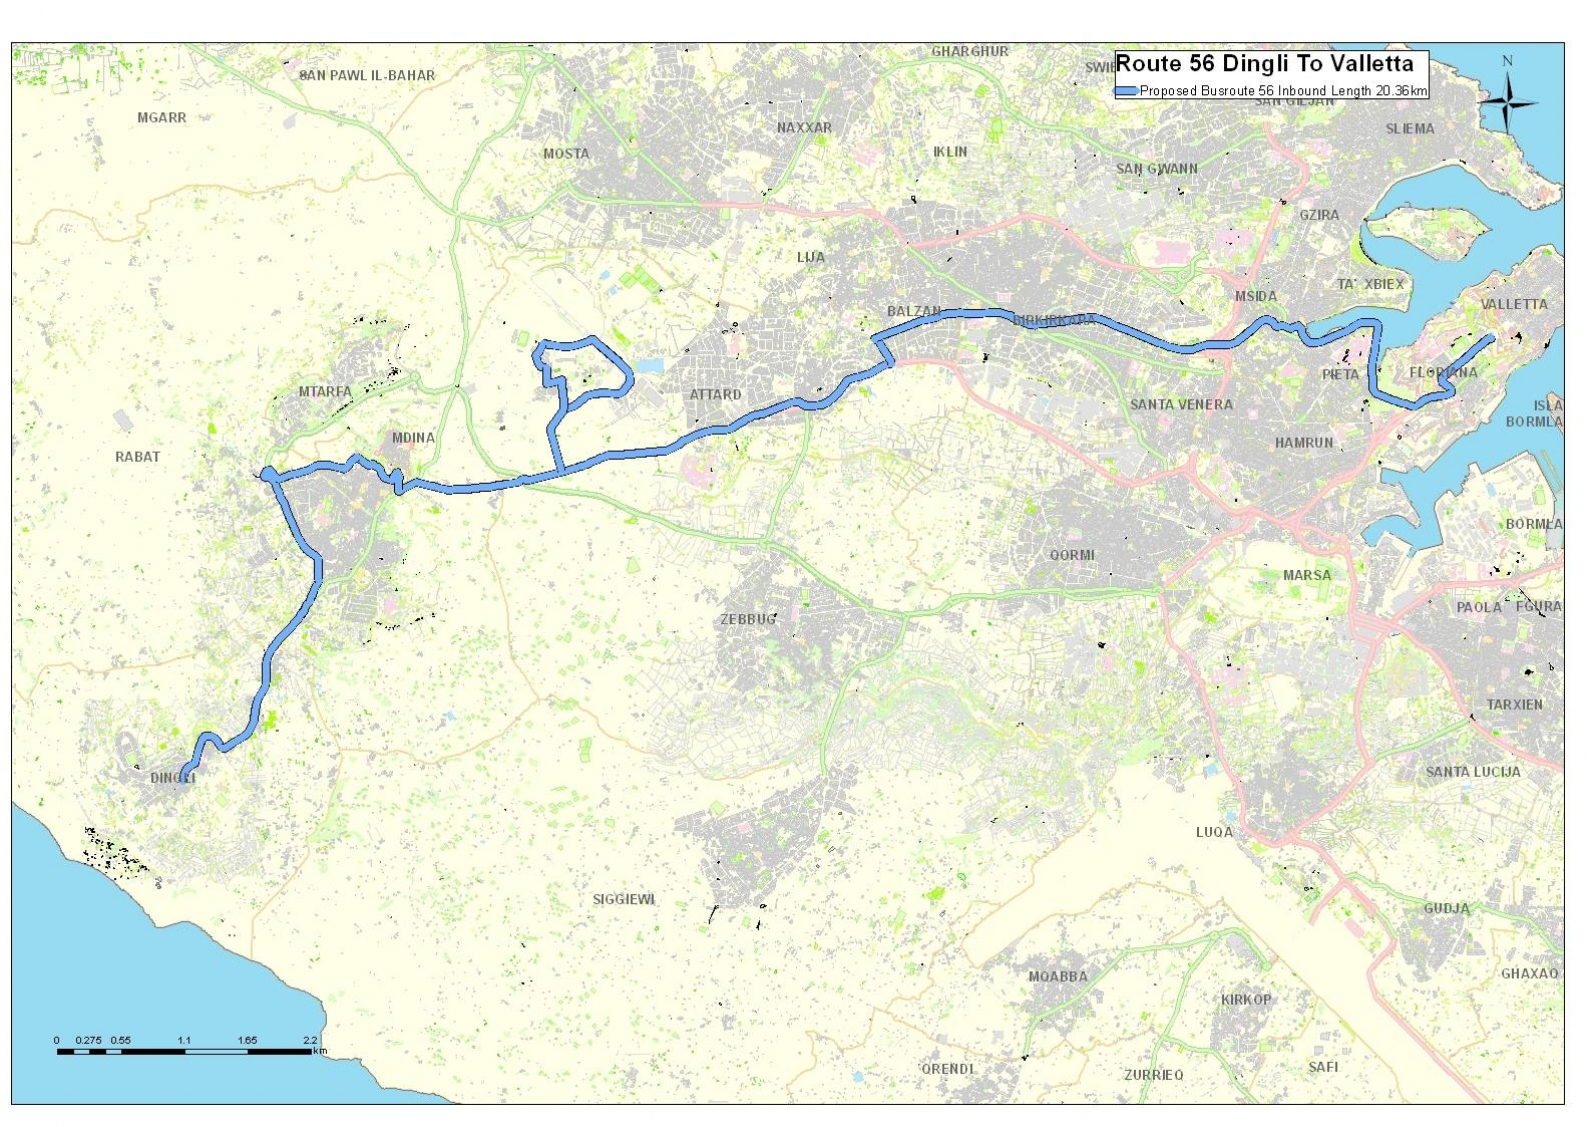 Land-current-network-routes-and-schedules-Dingli-Mtarfa-Rabat-10